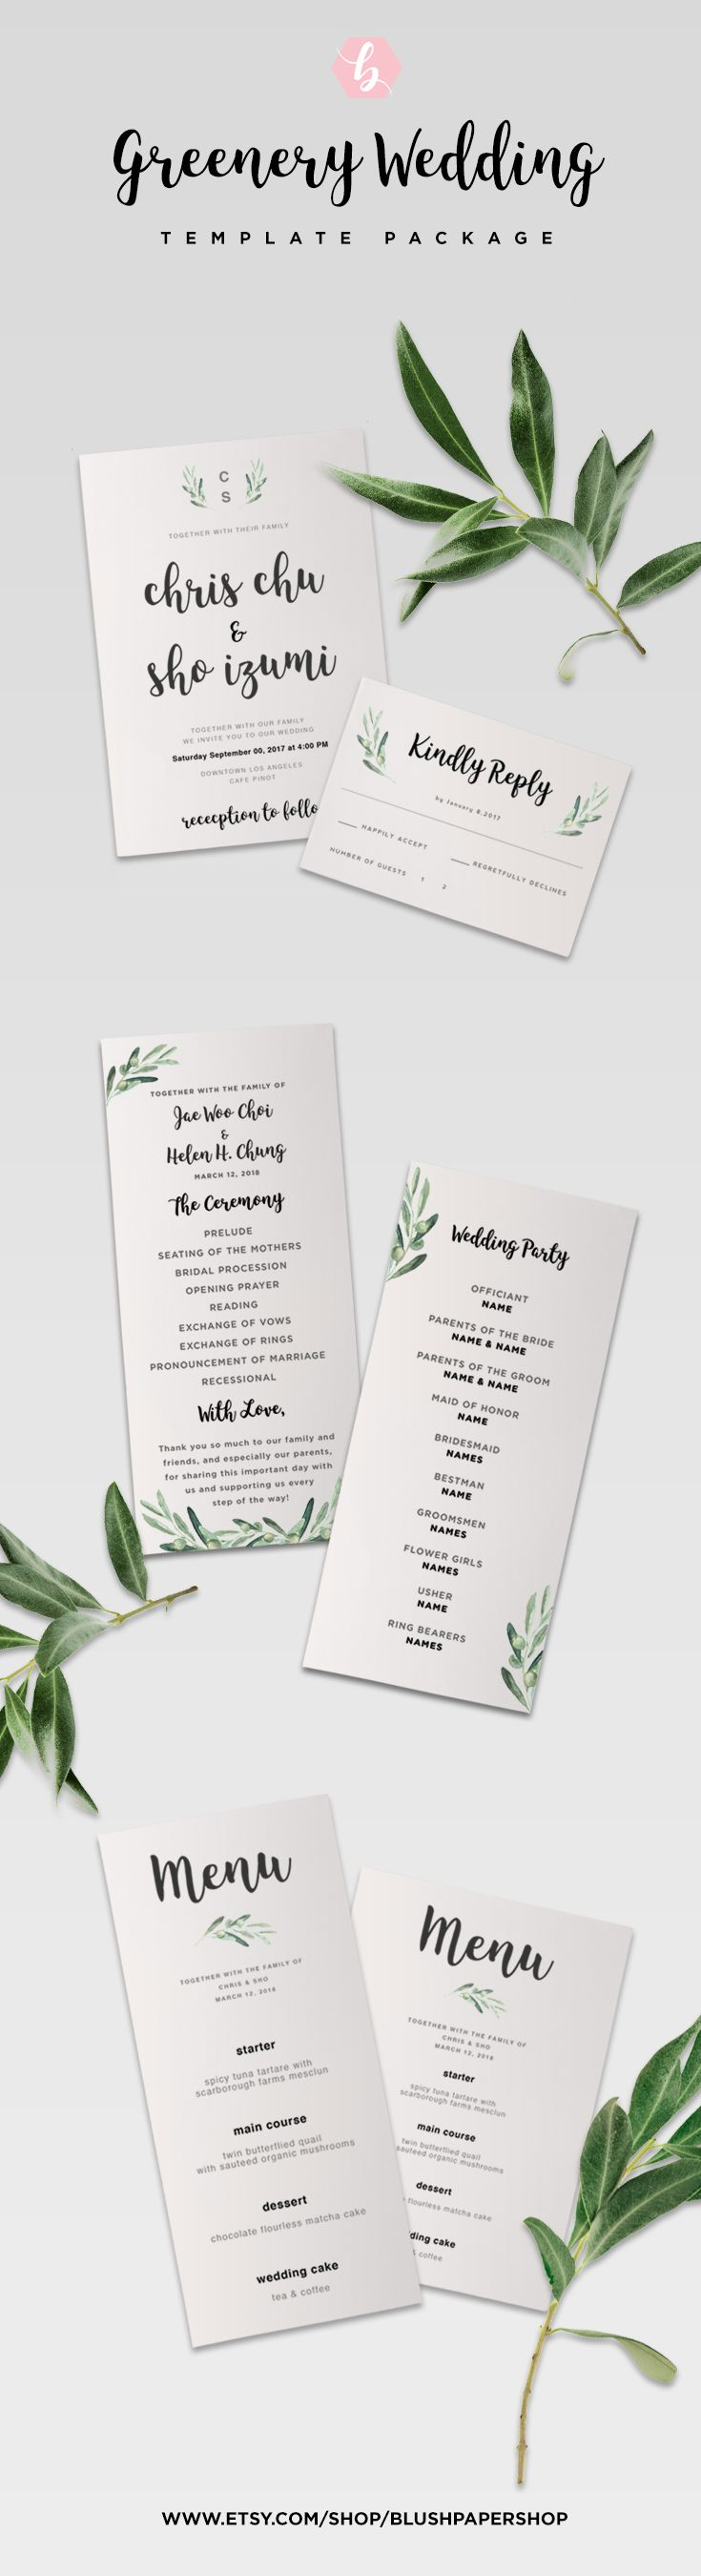 wedding invitation yourself No need to